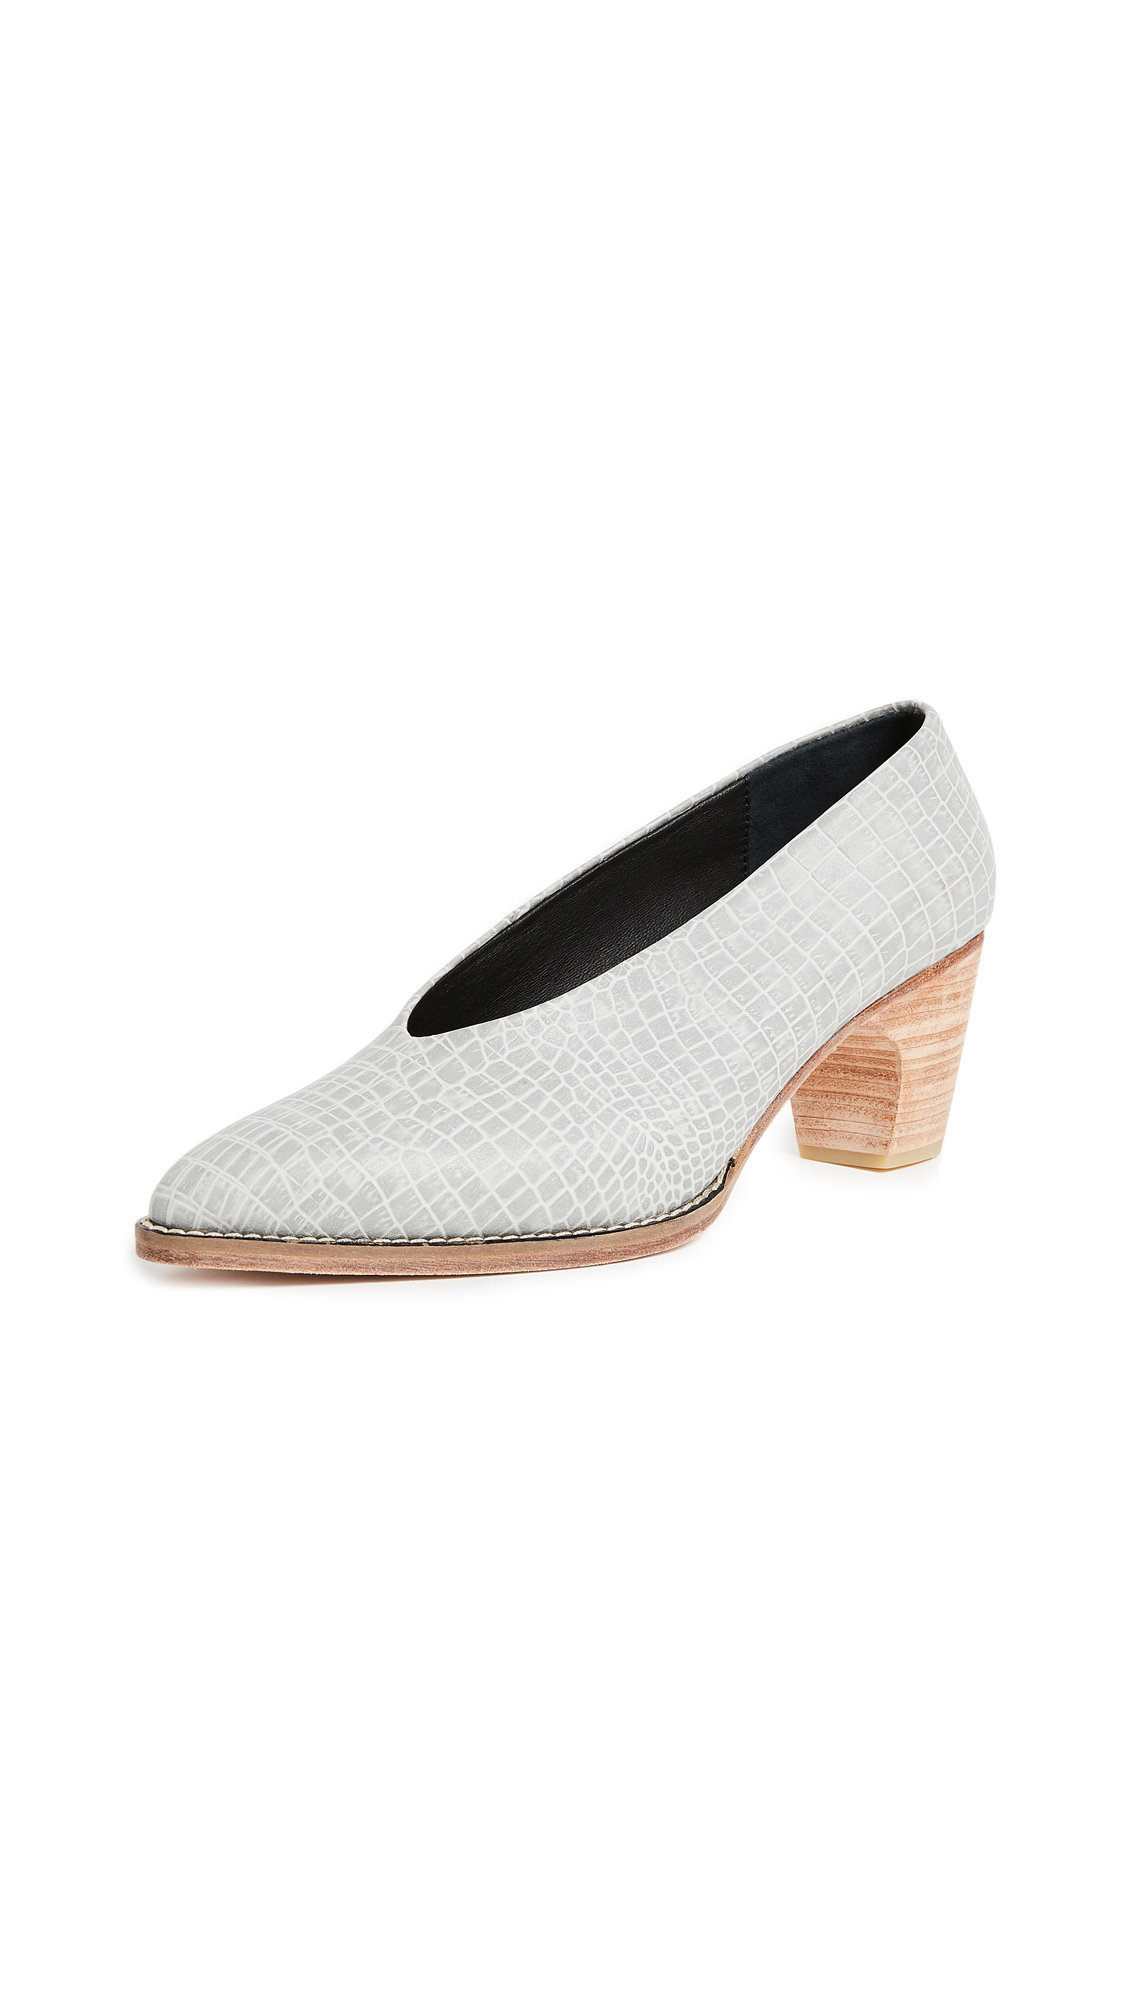 Rachel Comey Curie Choke Up Pumps - Grey Croc